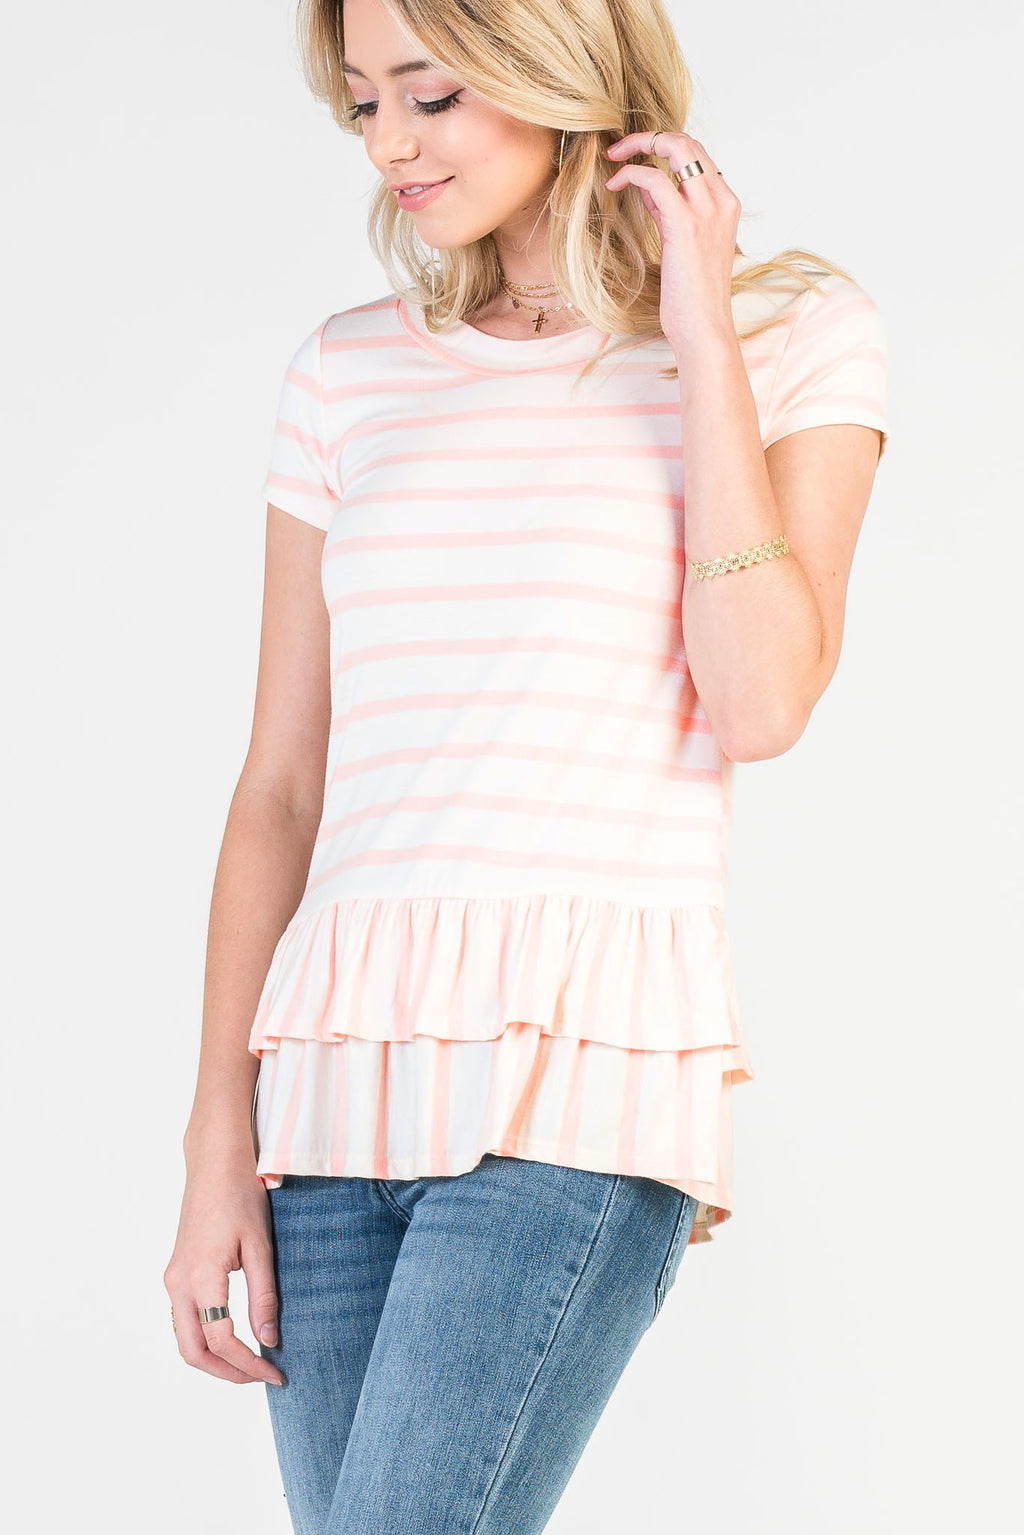 The Preston Top in Blush - Comfy and Chic Boutique